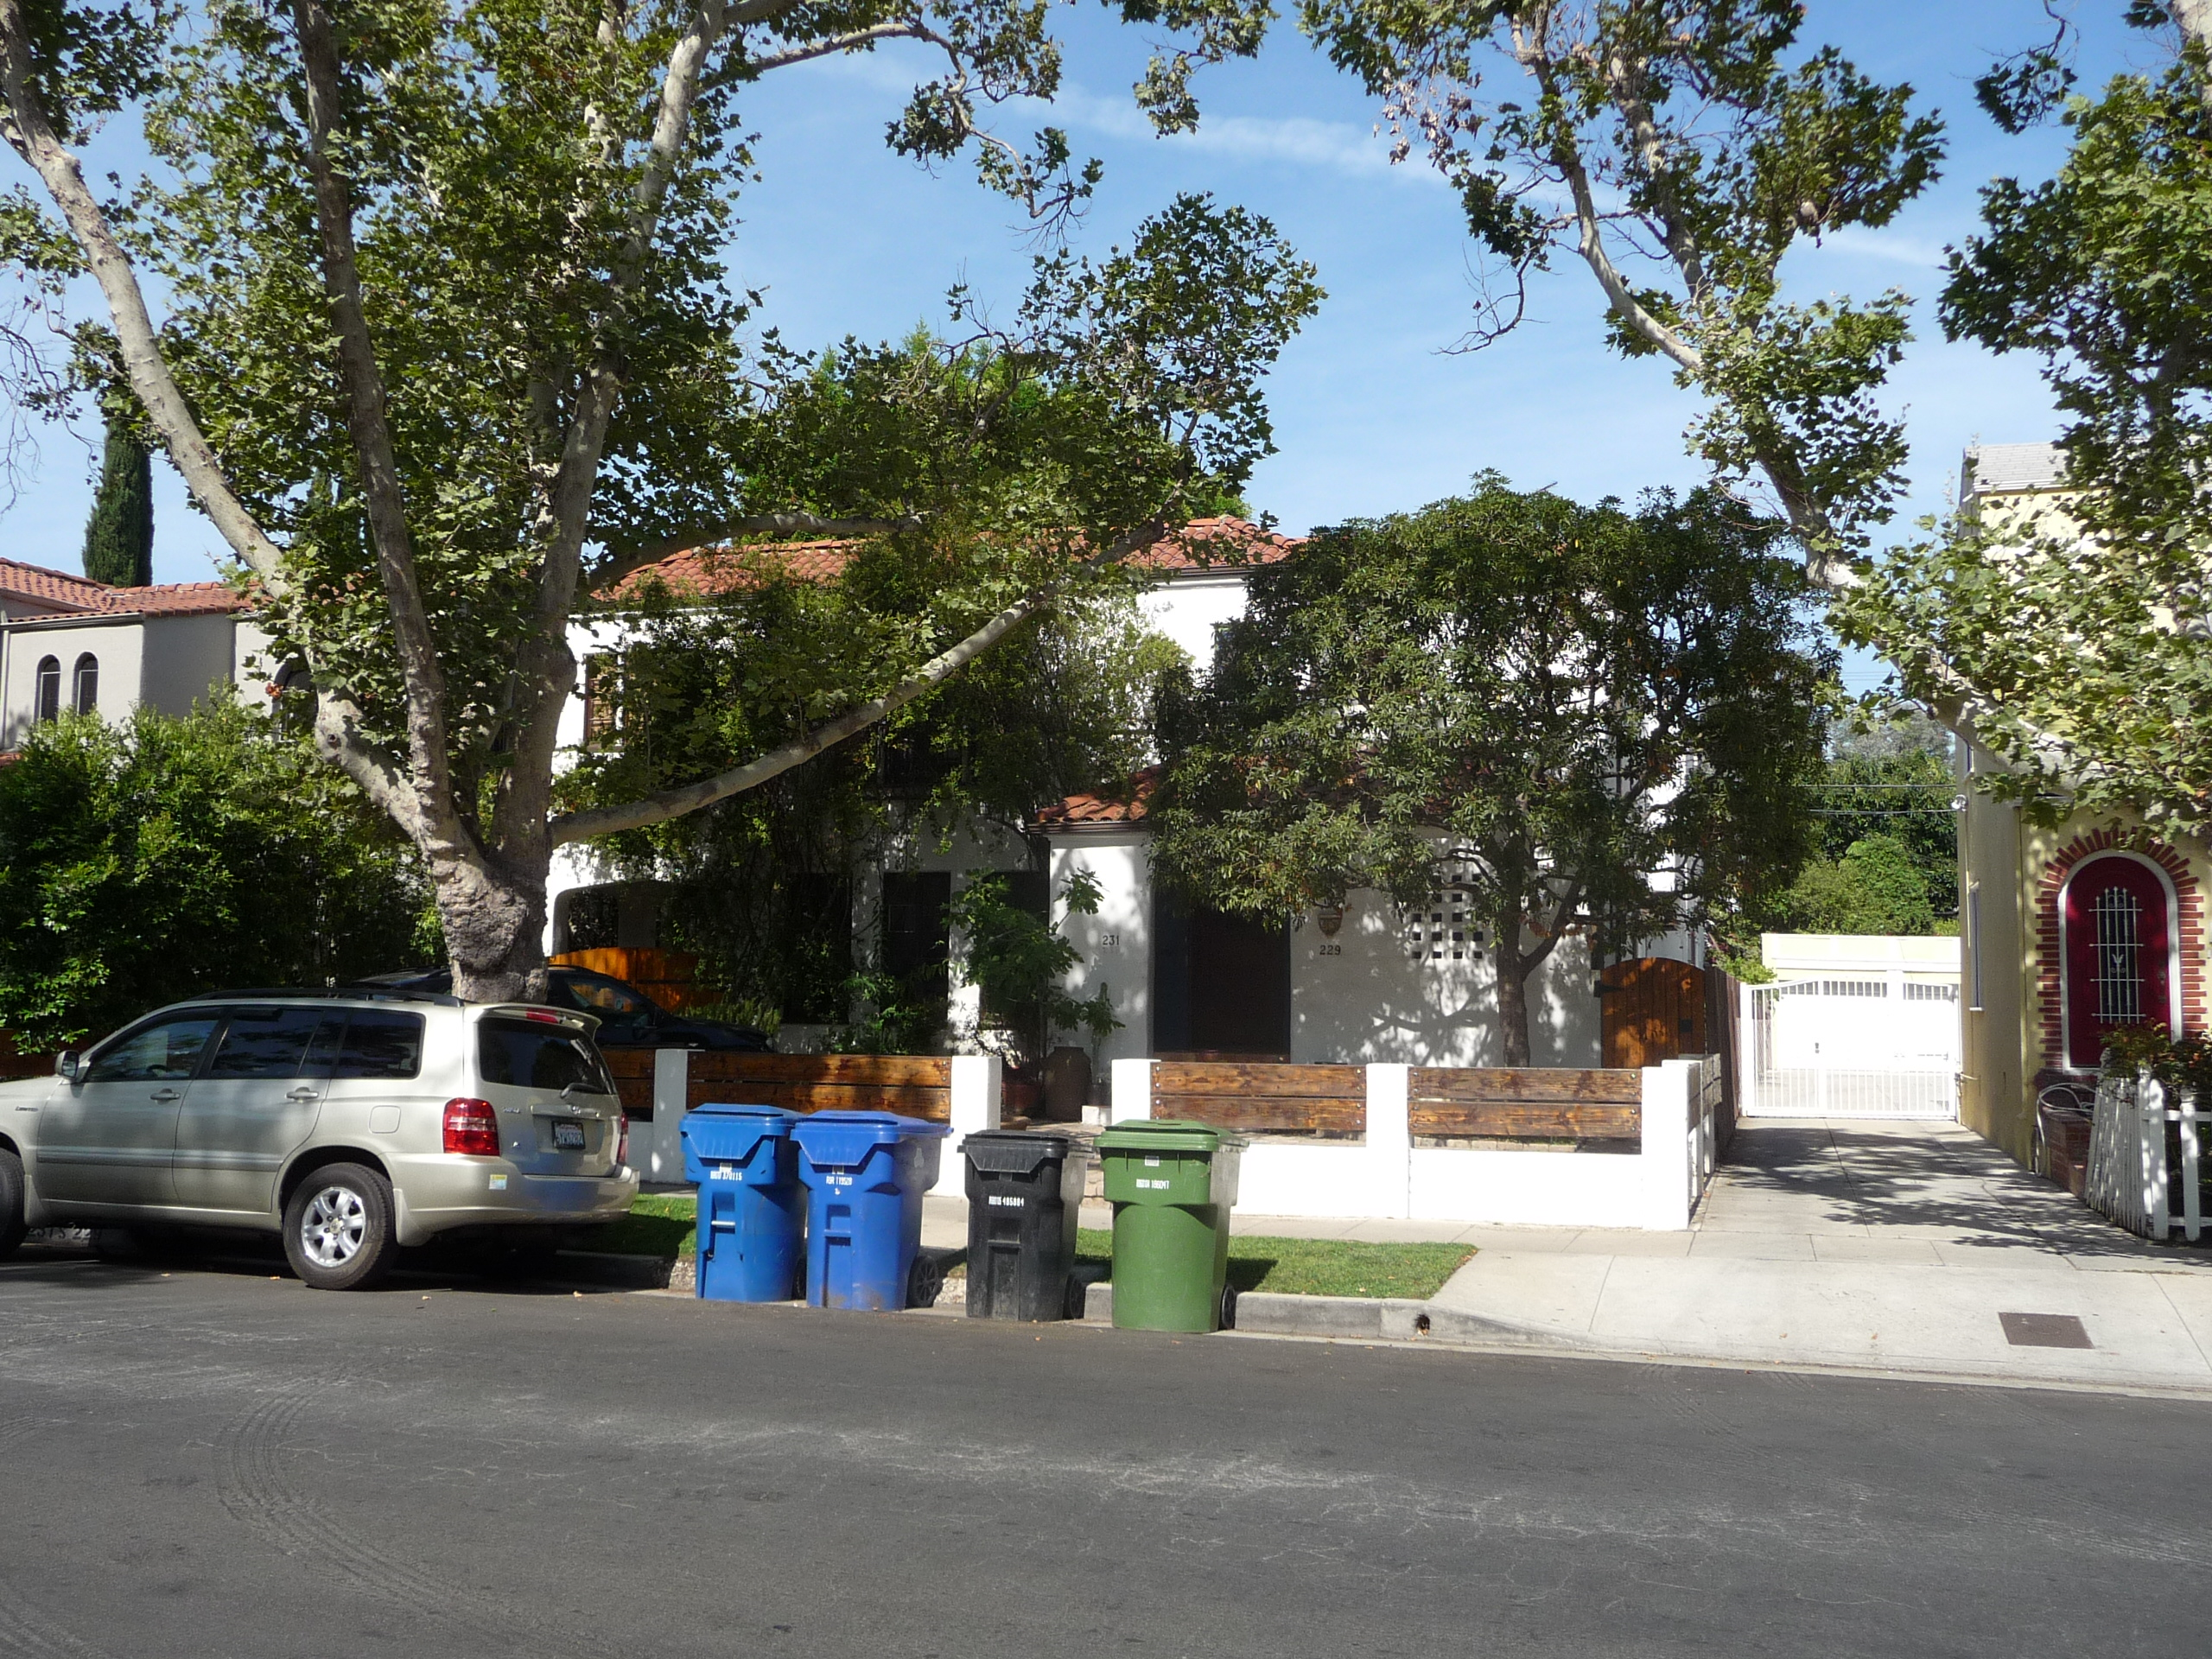 229 S MANSFIELD AVE - PHOTO